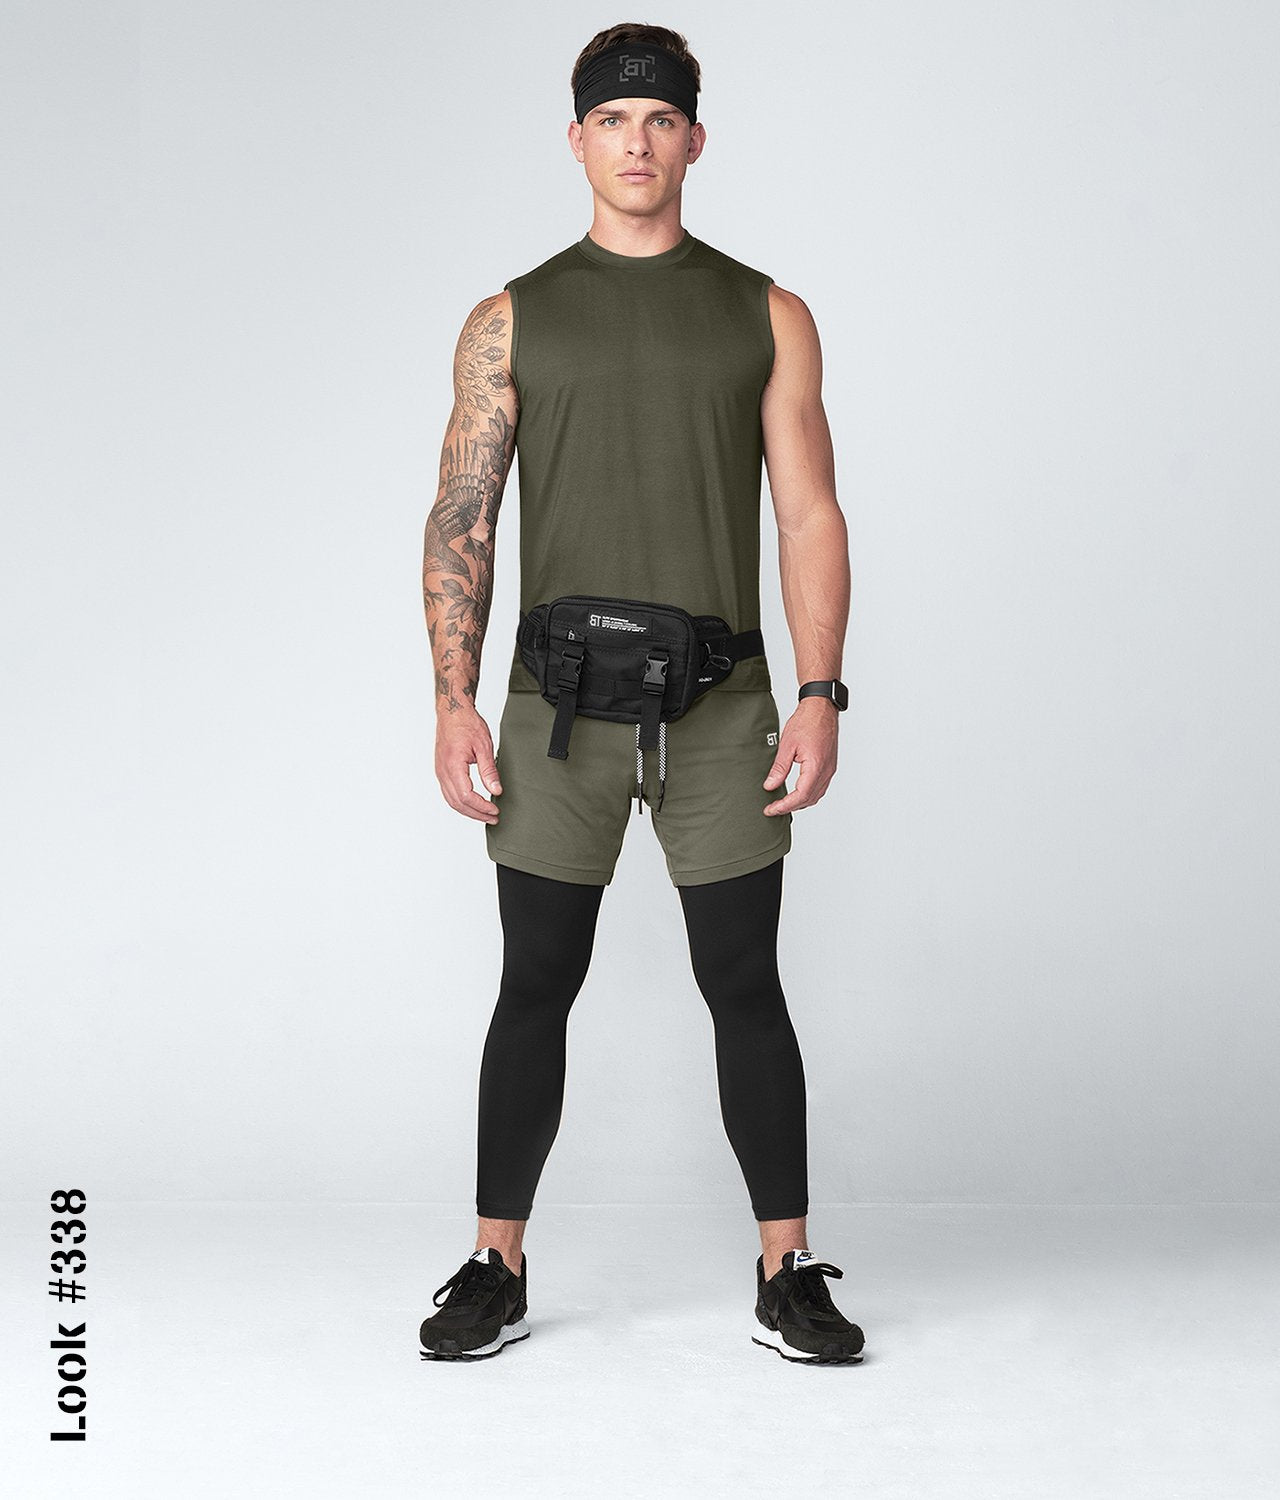 Born Tough United Kingdom Army Green Mock Neck Sleeveless Gym Workout Shirt For Men